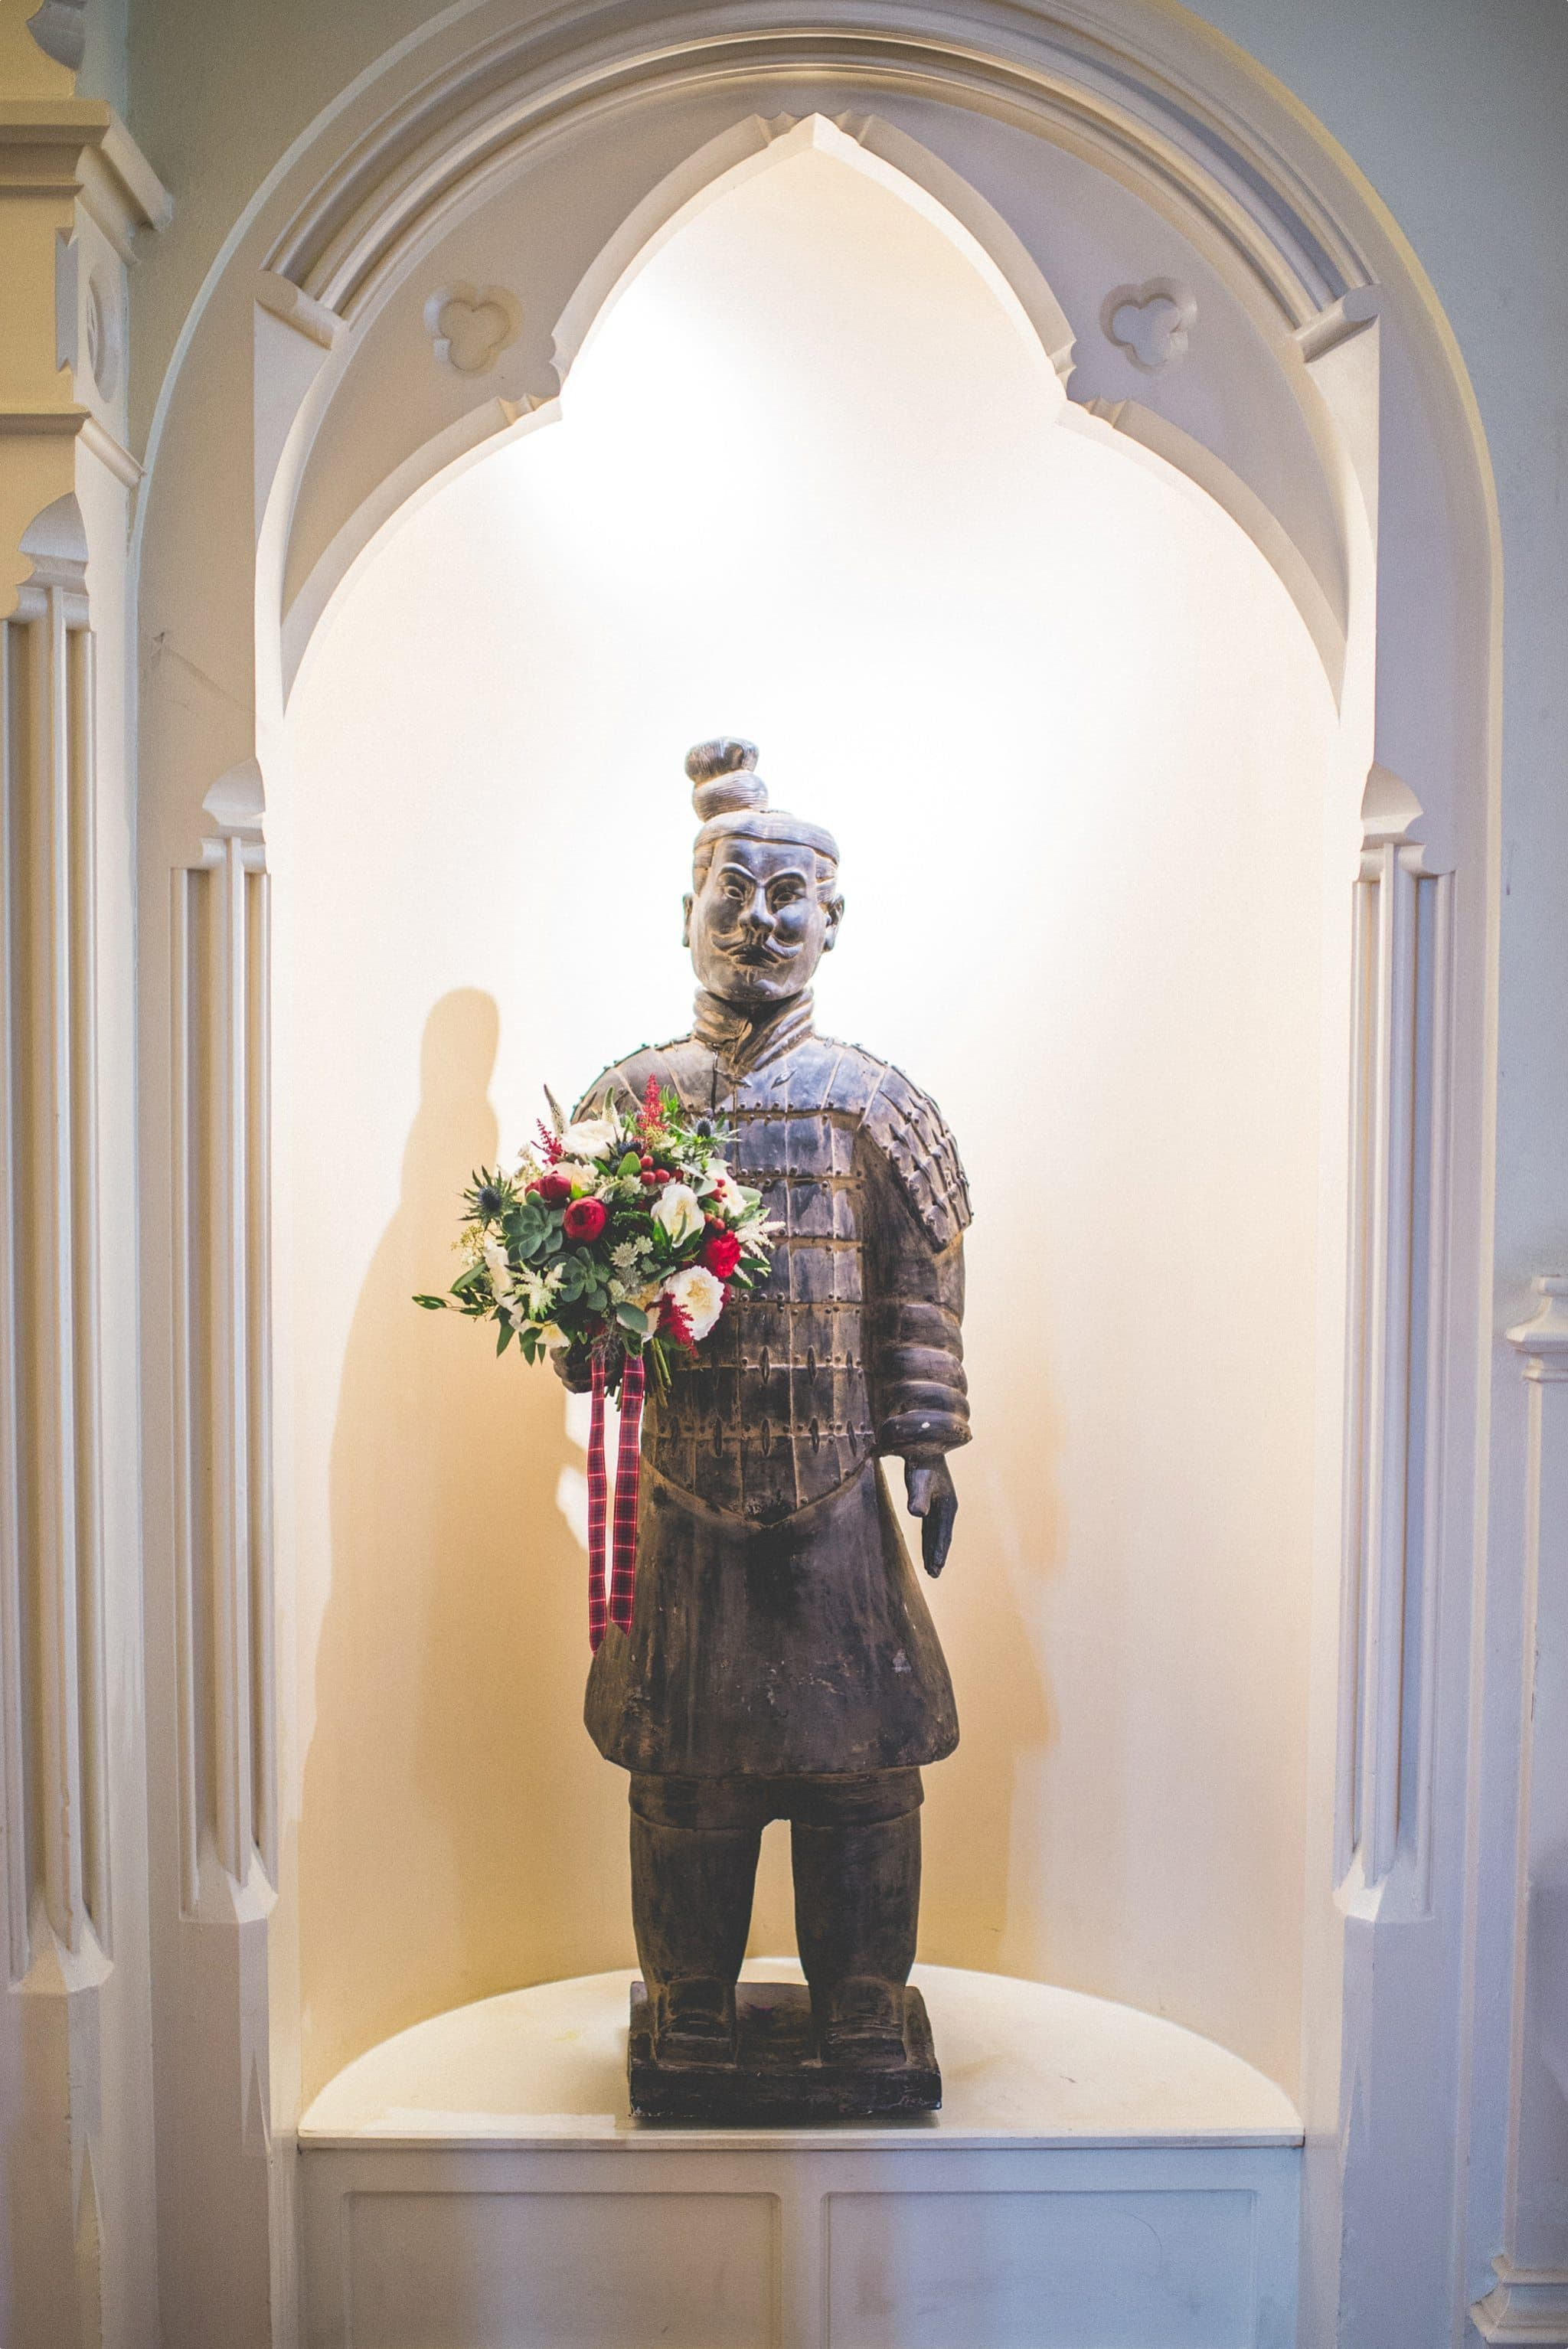 Elvetham Hotel Chinese warrior holding the bride's bouquet